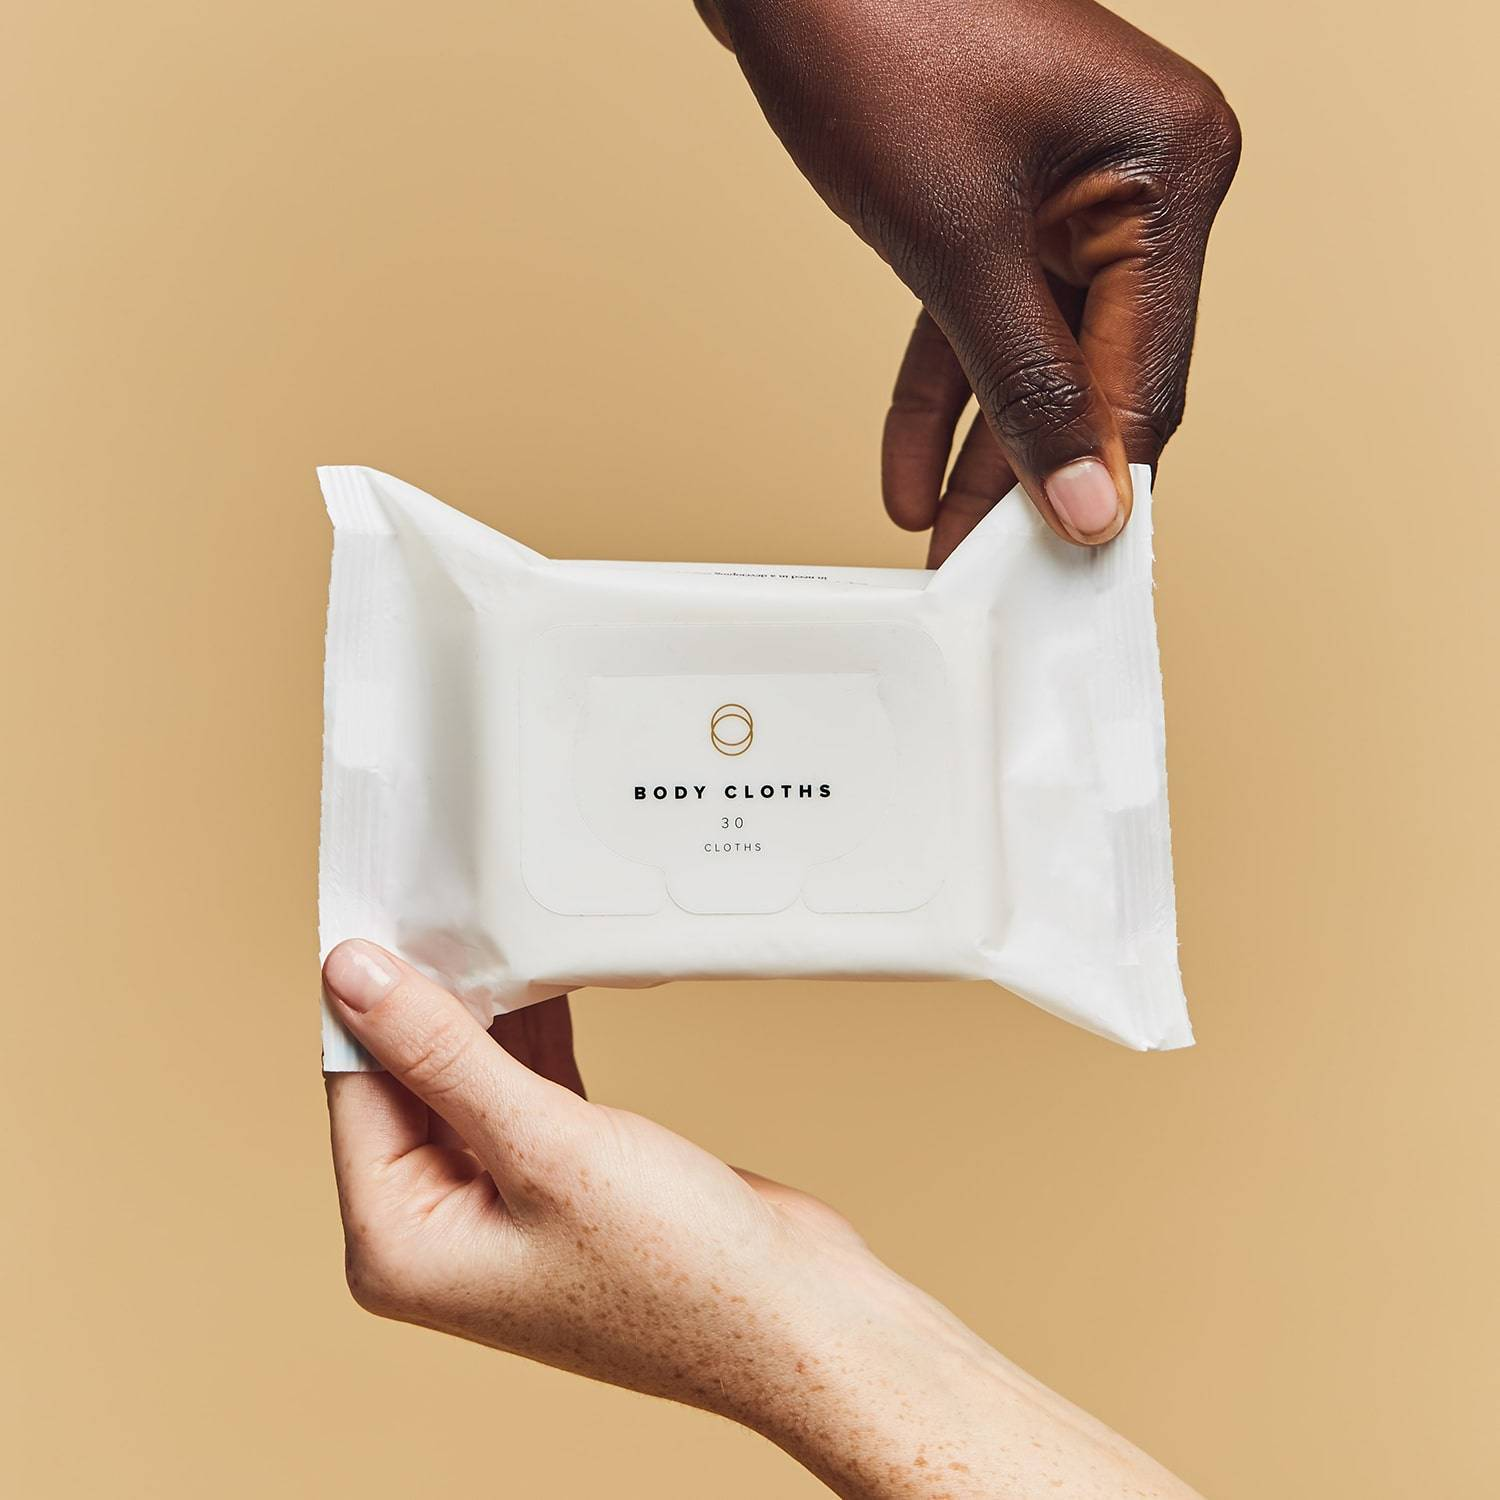 Two hands holding a pouch of body cloths